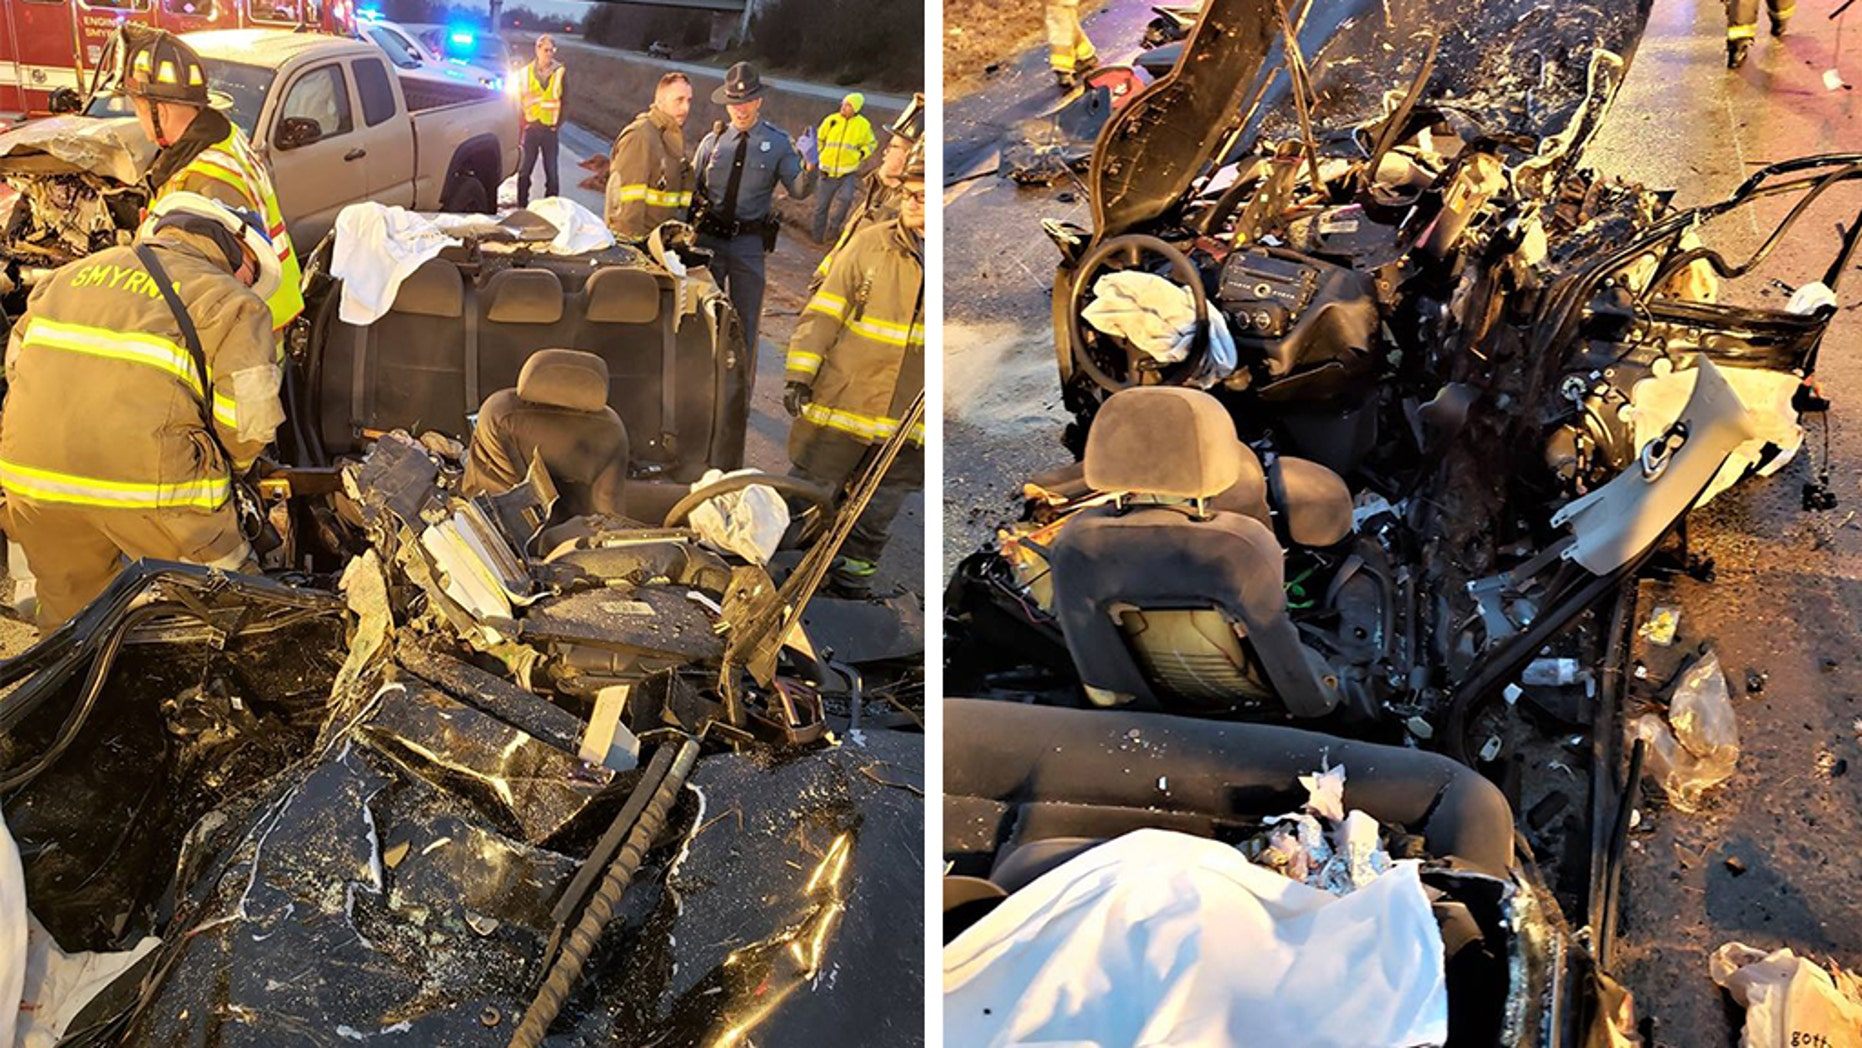 Four Delaware State University students were injured in a car accident on Saturday, officials said.